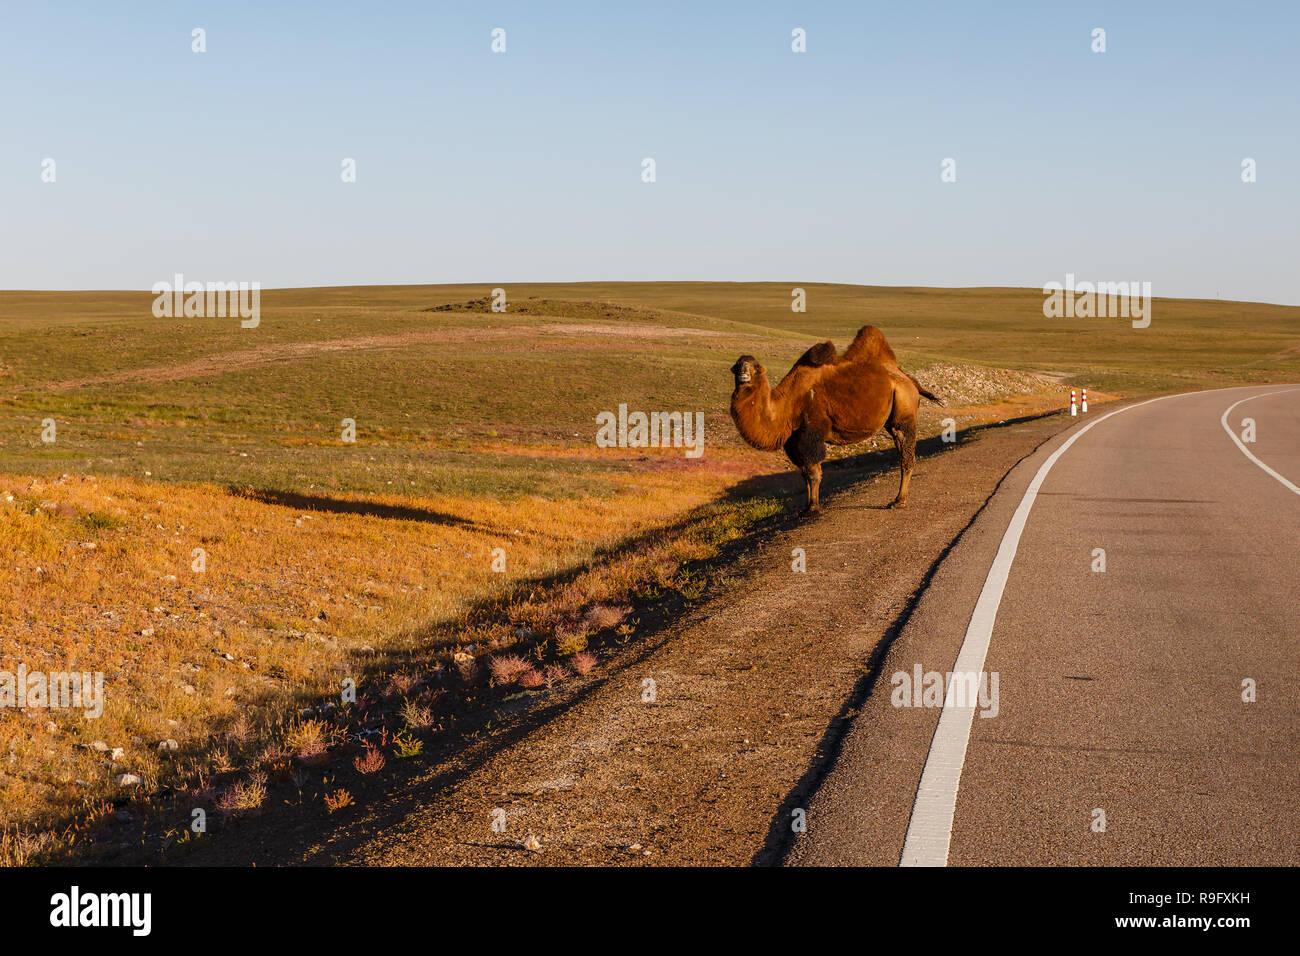 two-hump camel stands near the road - Stock Image